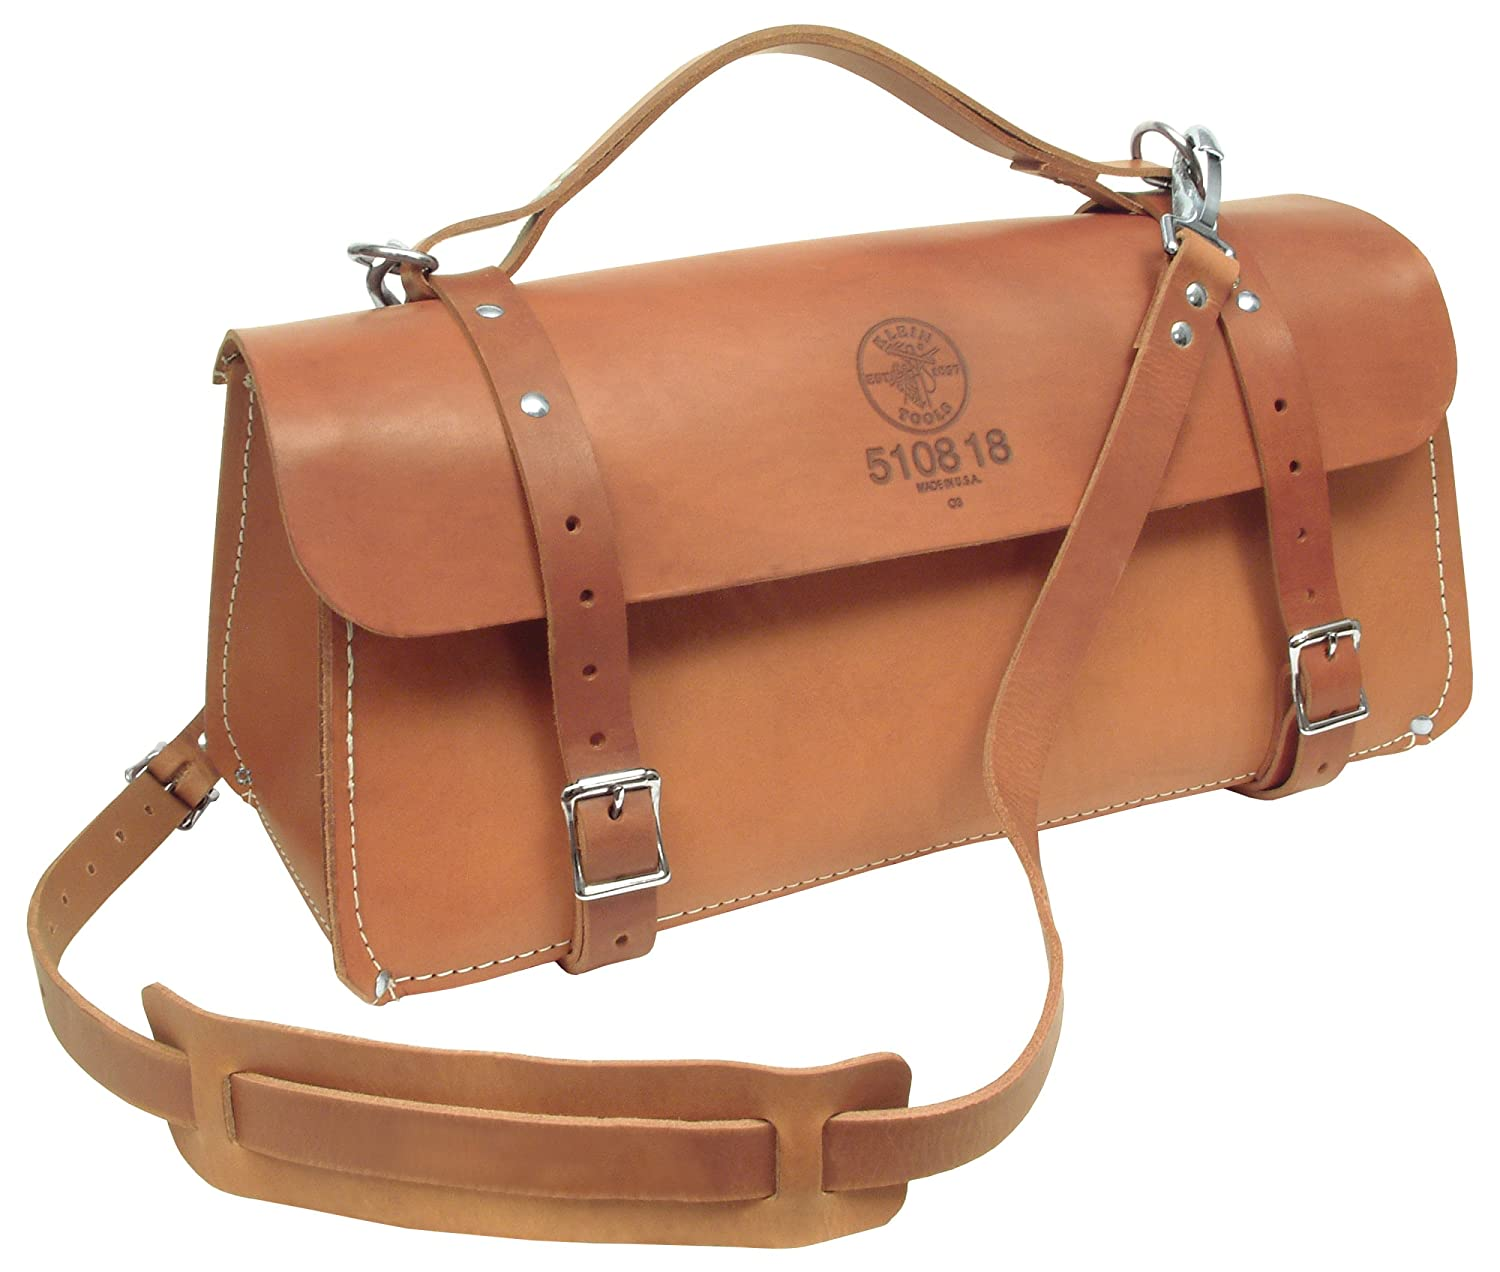 Klein Tools 5108-18 Delux Leather Bag, 18-Inch by Klein [並行輸入品] B0002DOHAE